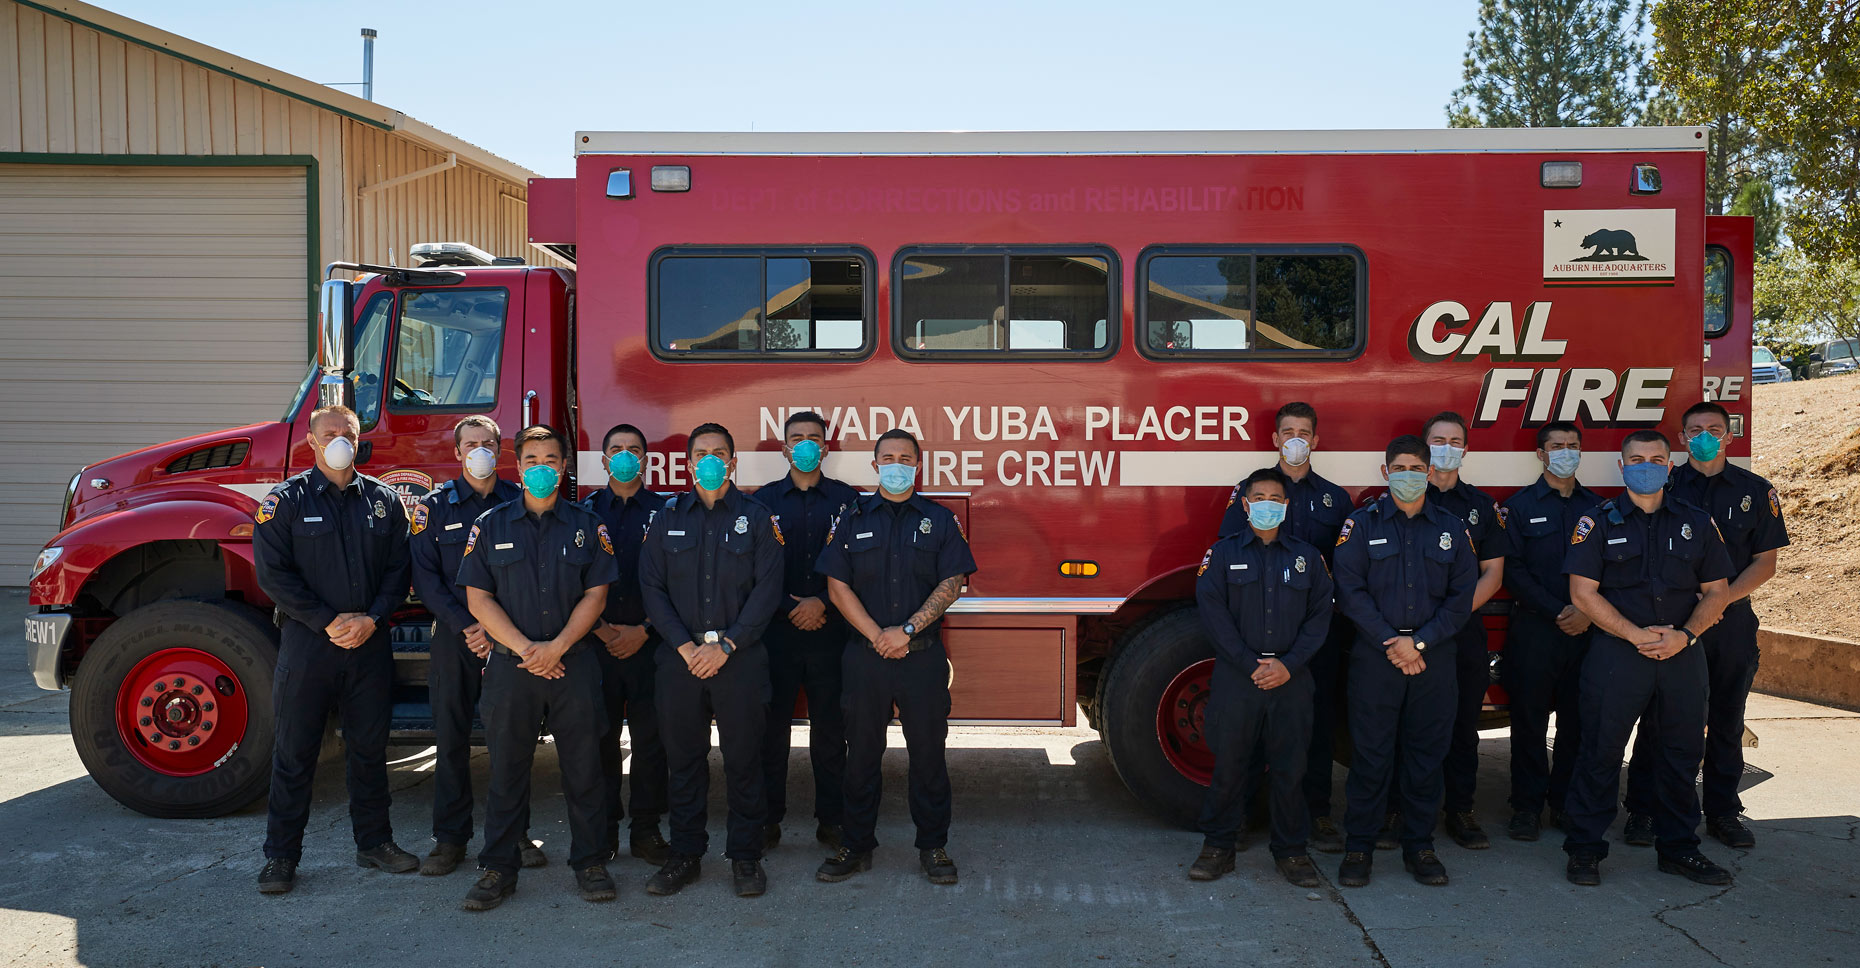 Cal Fire NEU Crew 1 by Their Crew Bus